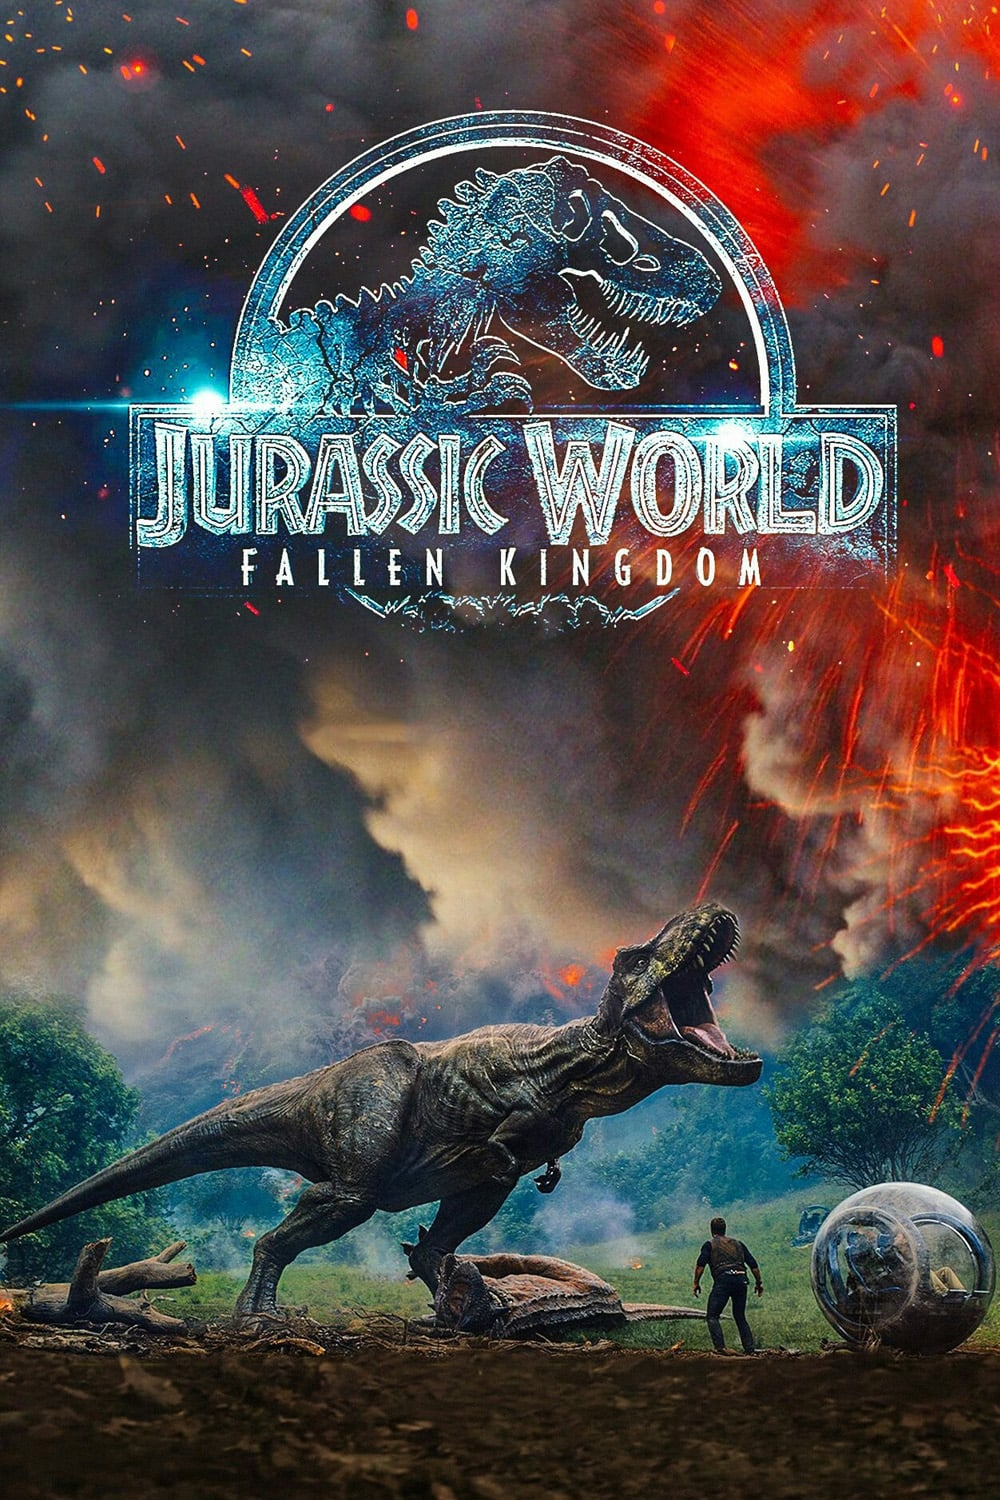 دانلود فیلم Jurassic World Fallen Kingdom 2018